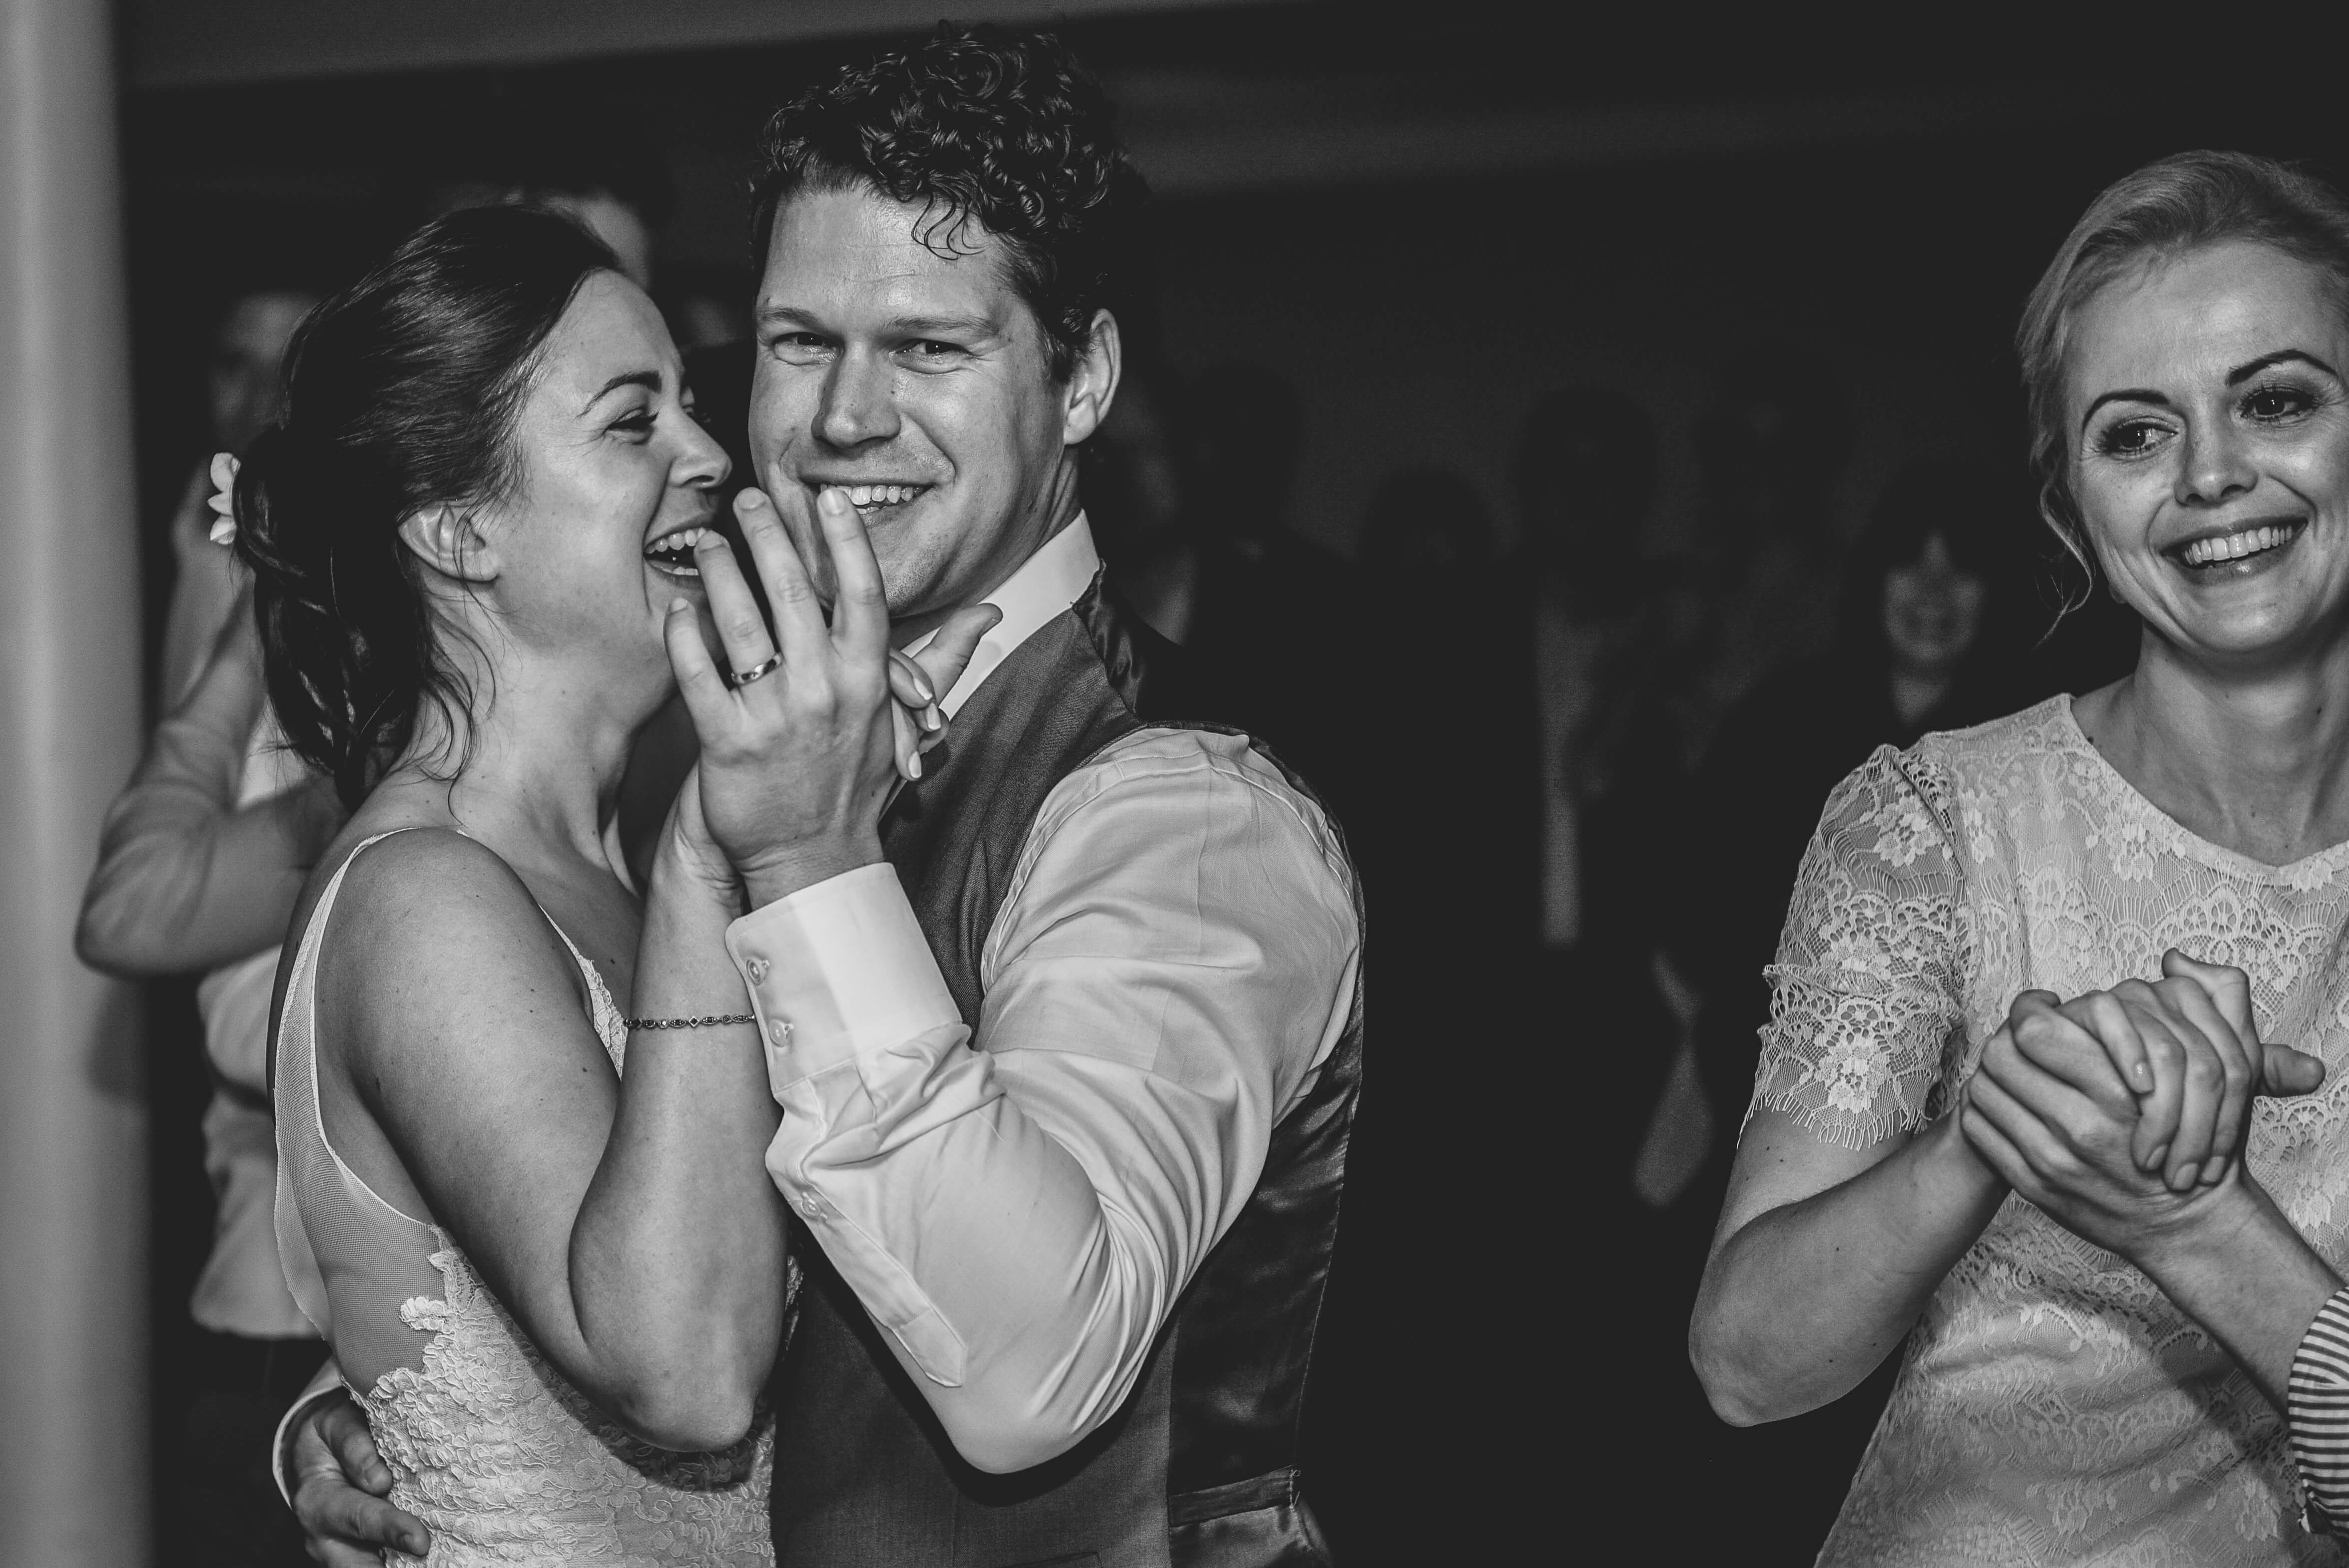 A bride and groom holding hands, smiling and laughing on their wedding night.